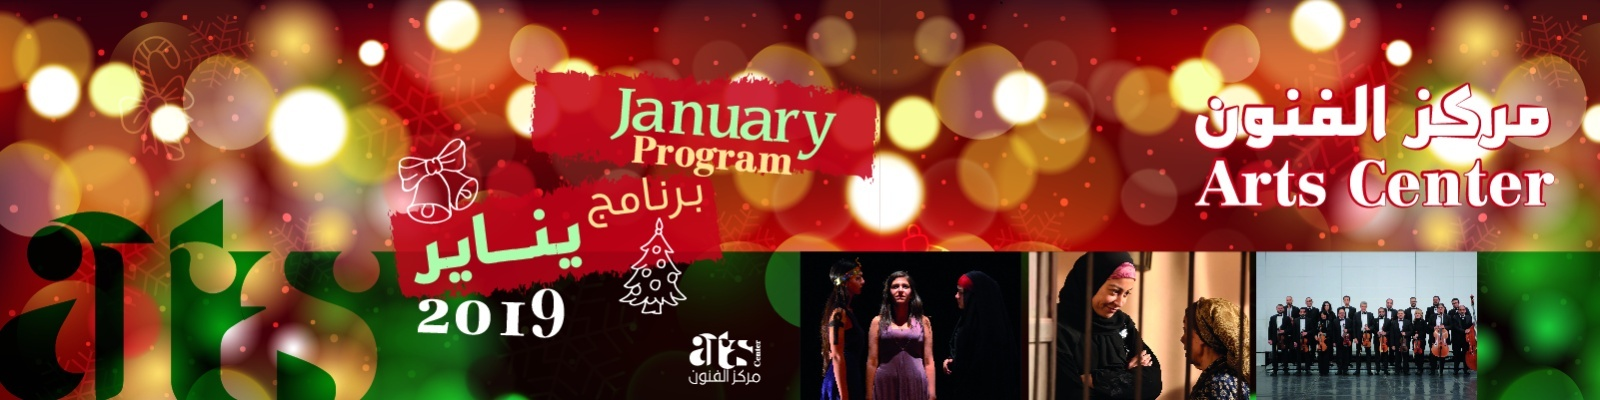 Arts Center: January Program